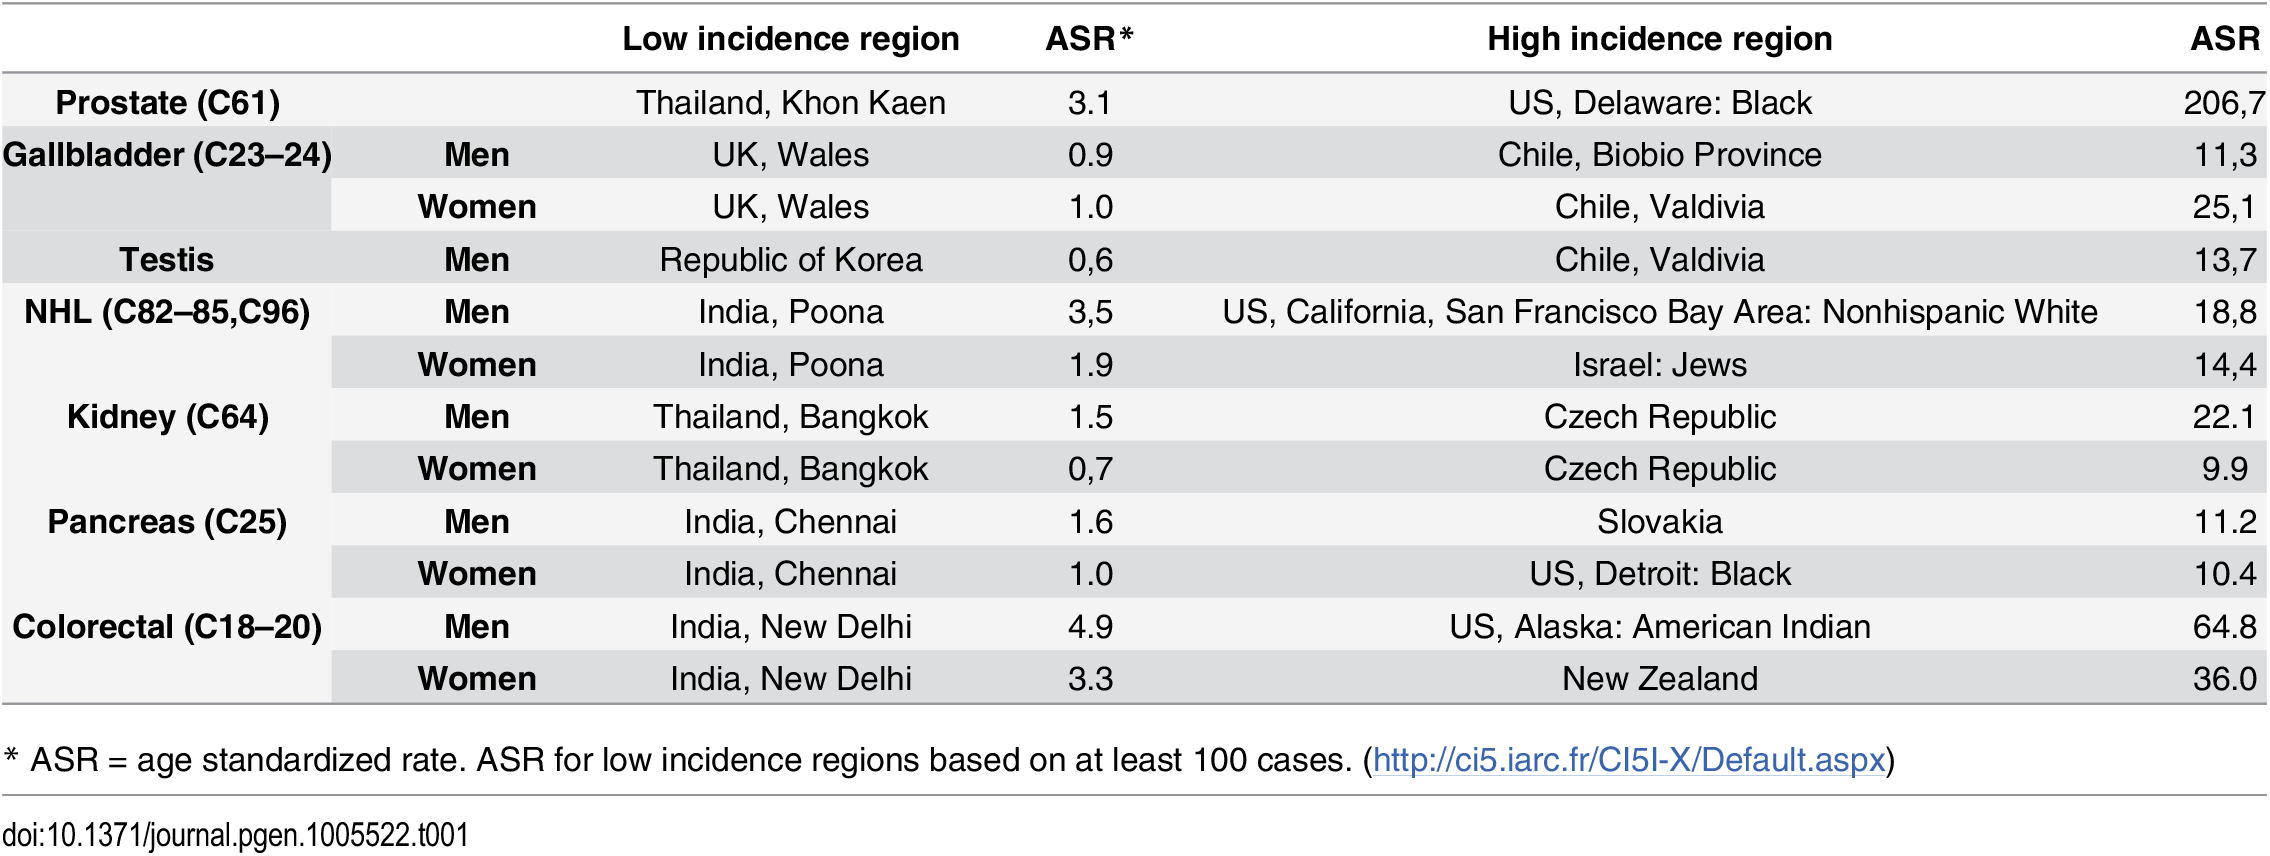 Cancer registries with low and high incidence rates for selected cancers for which the etiology is not well understood.